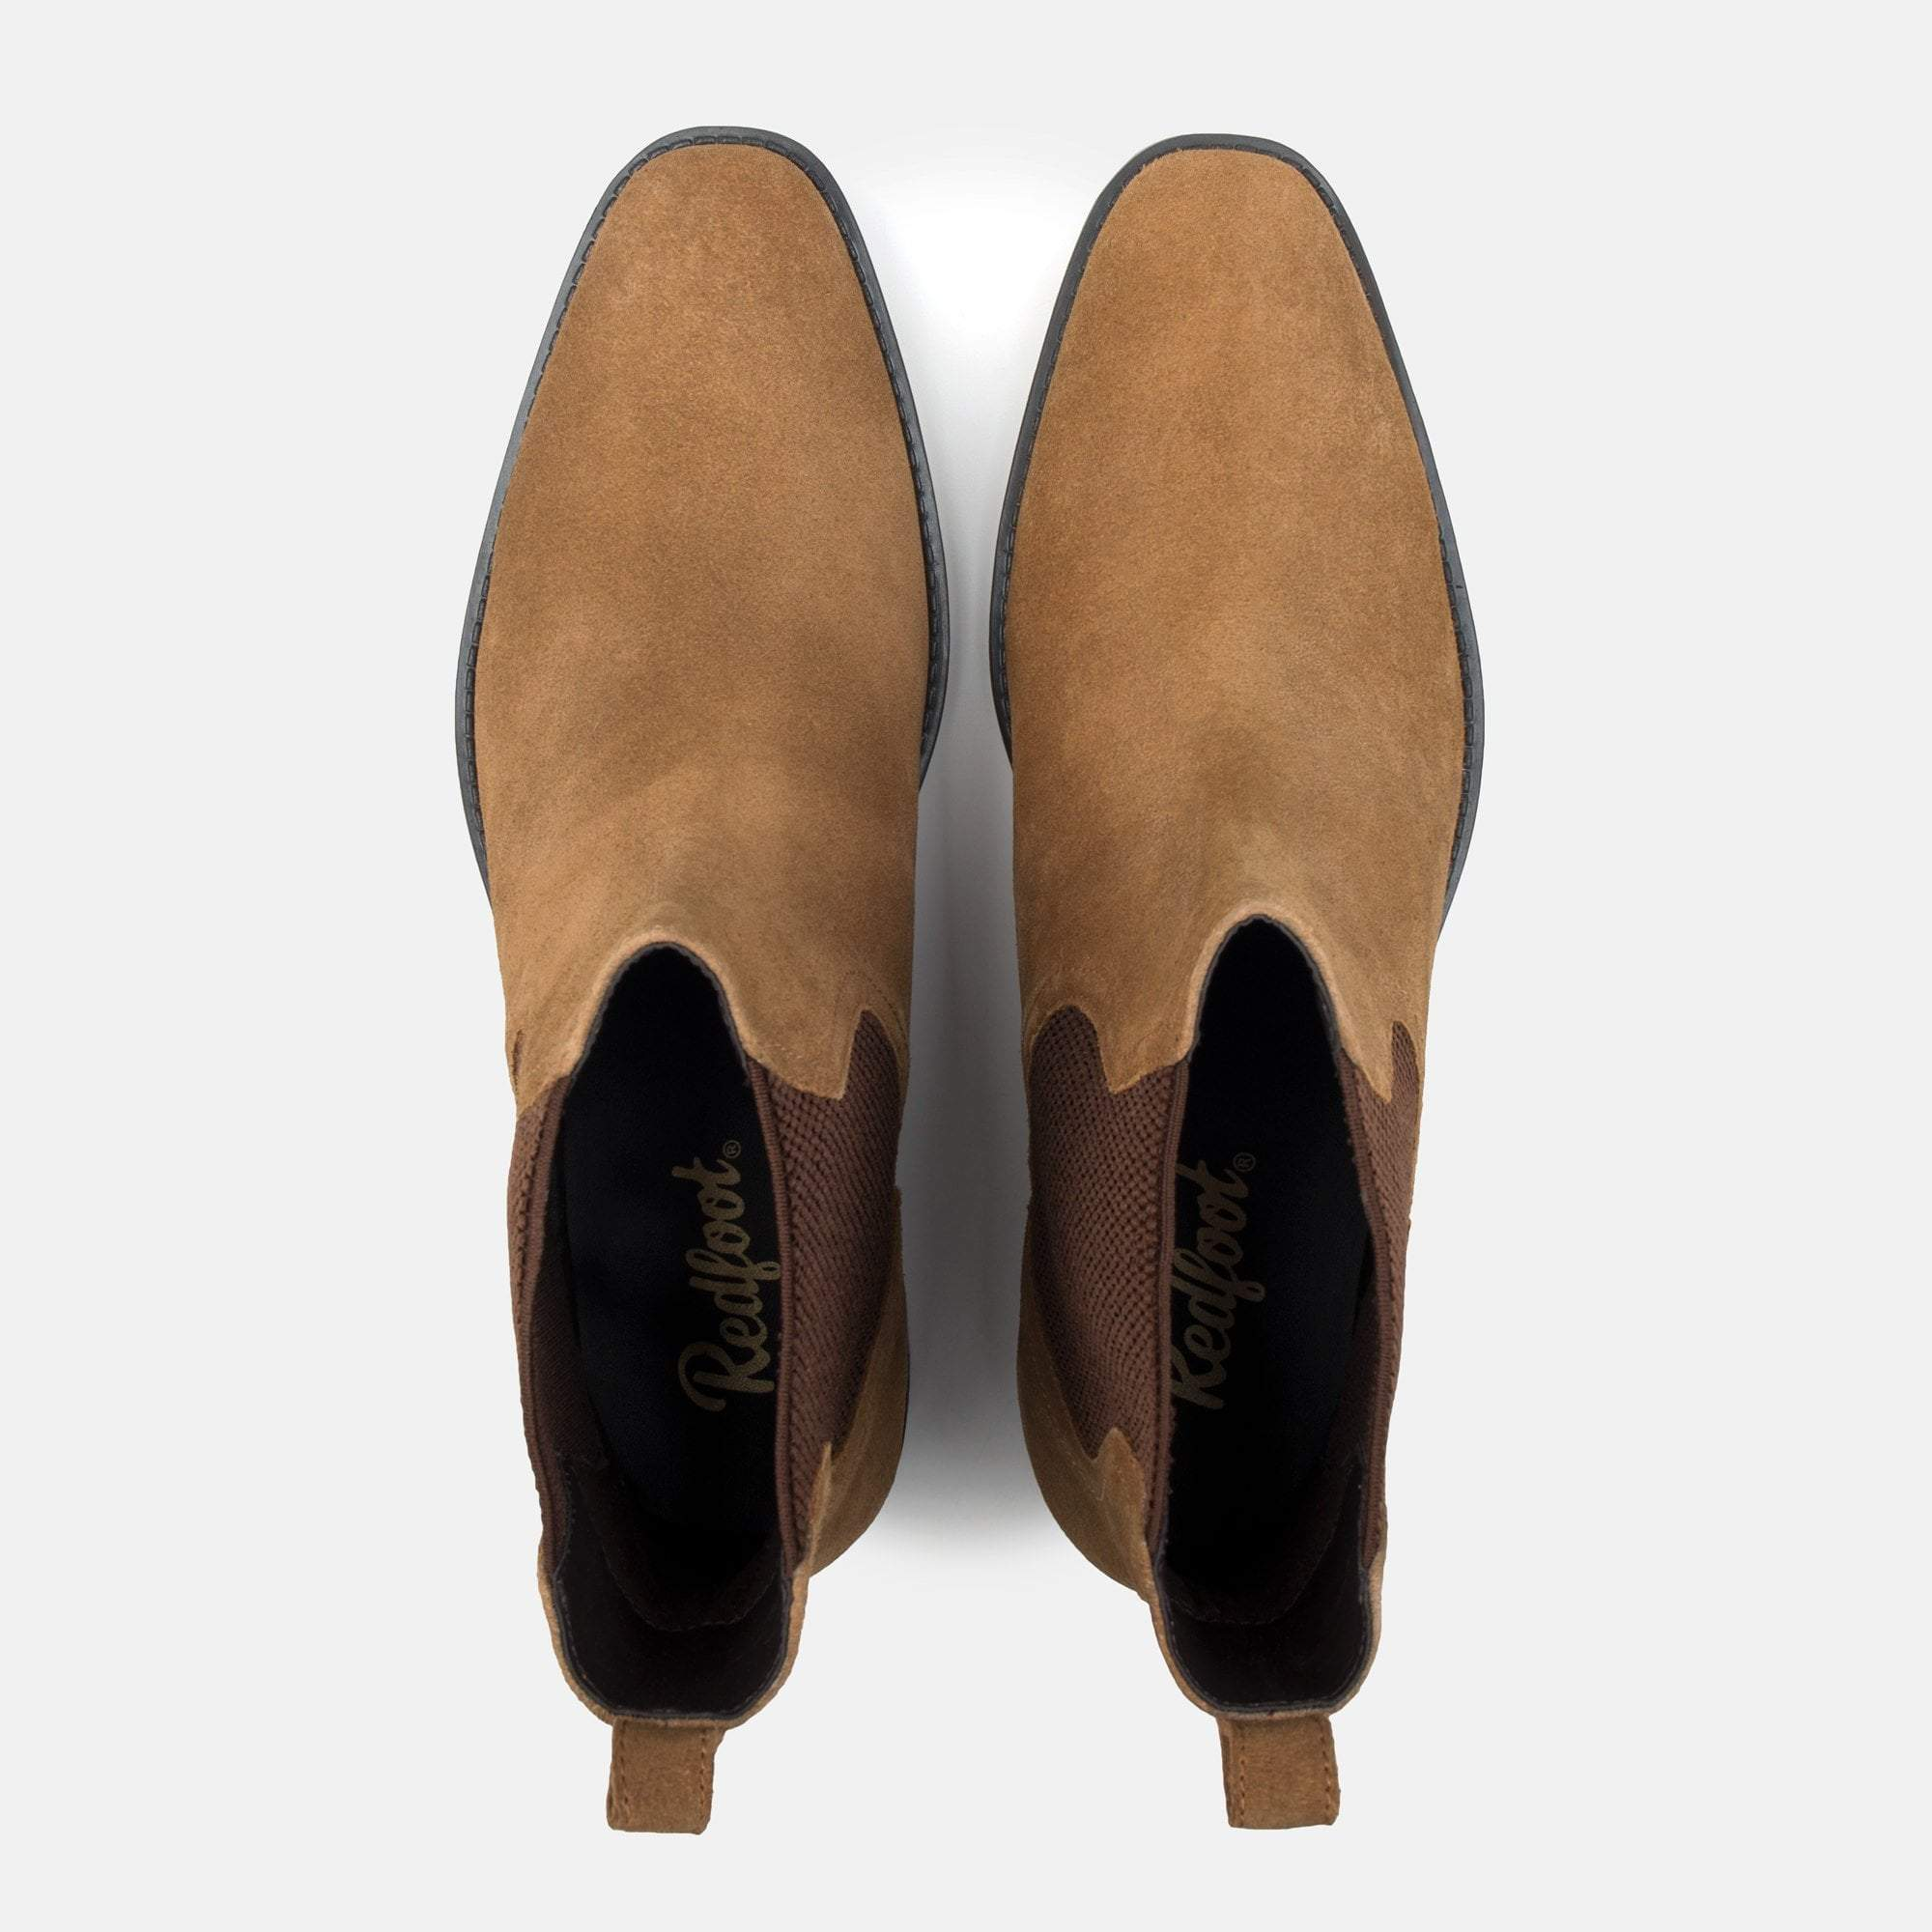 Redfoot Footwear UK 6 / EURO 39 / US 7 / Chestnut / Suede THOMAS CHESTNUT